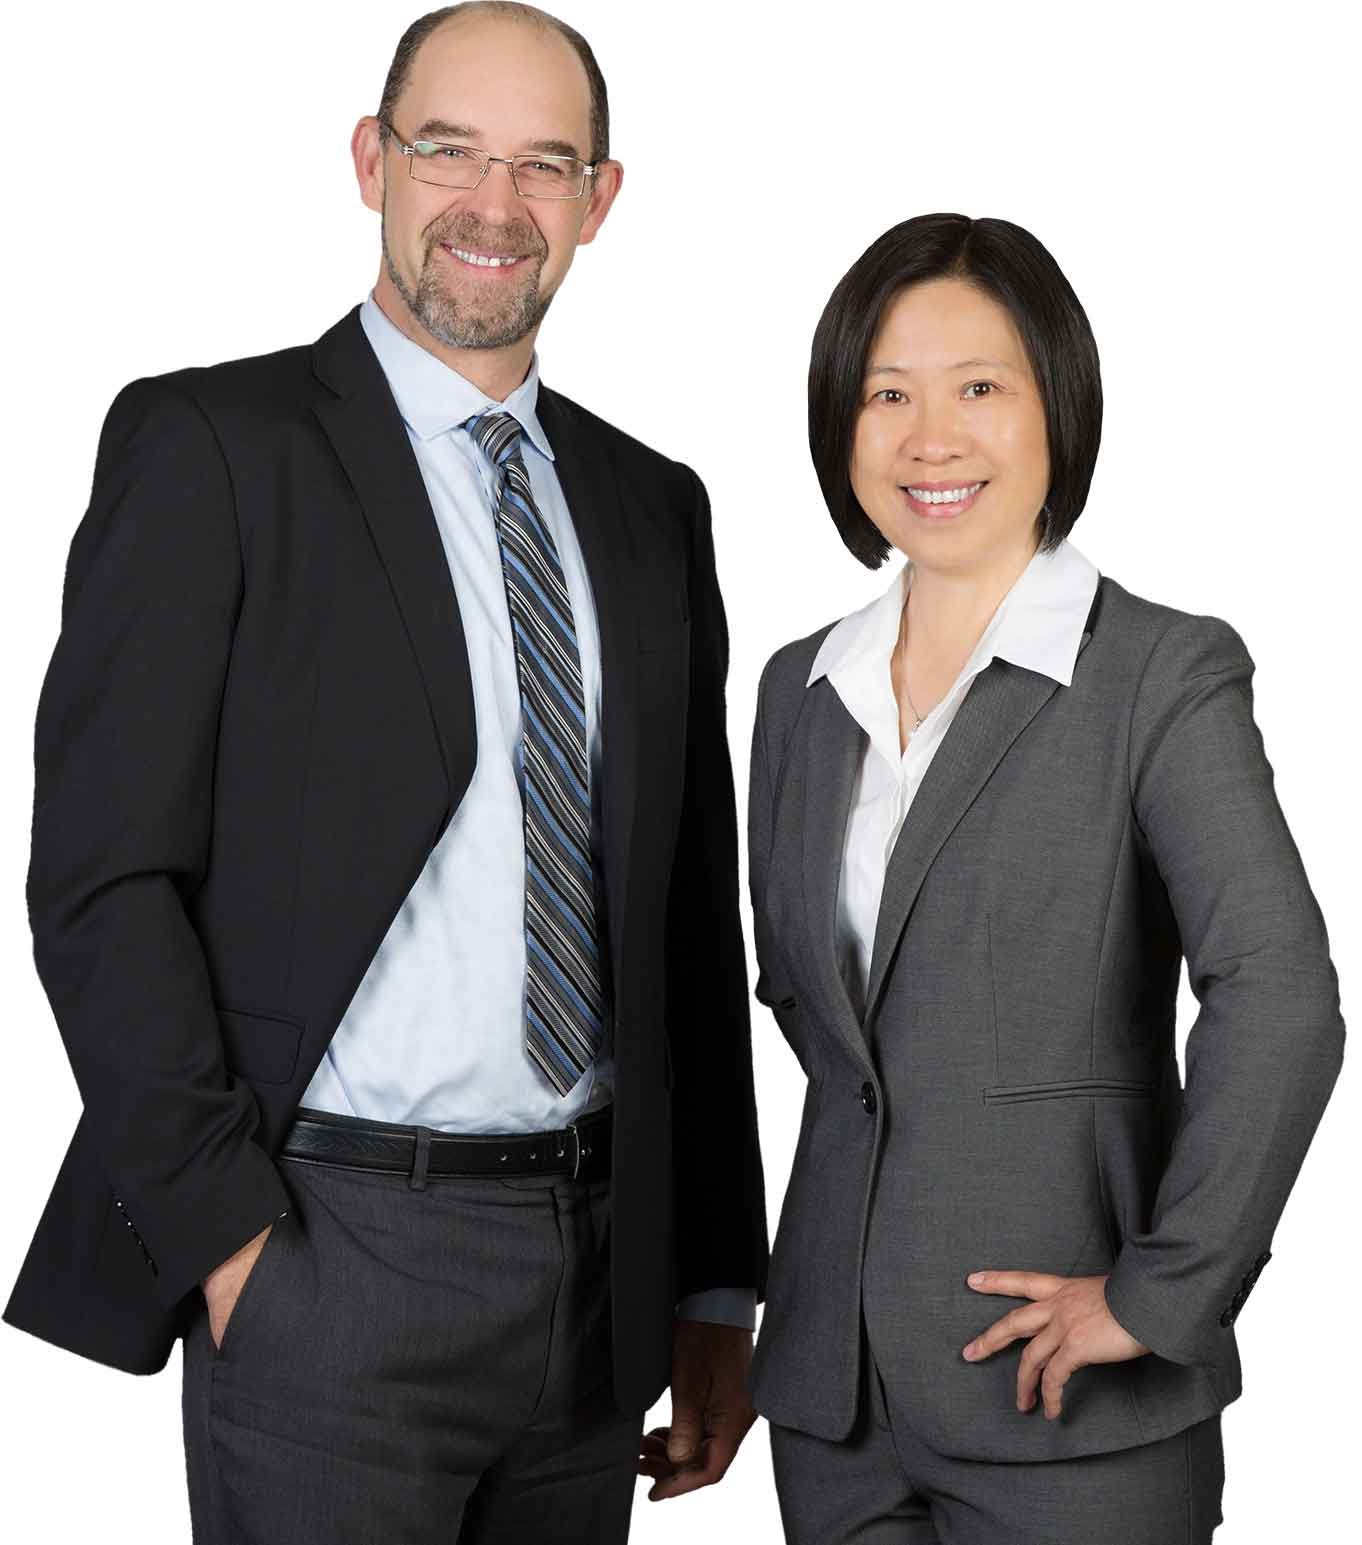 Mark And Jemma Realtors, Mississauga, Real Estate Agent